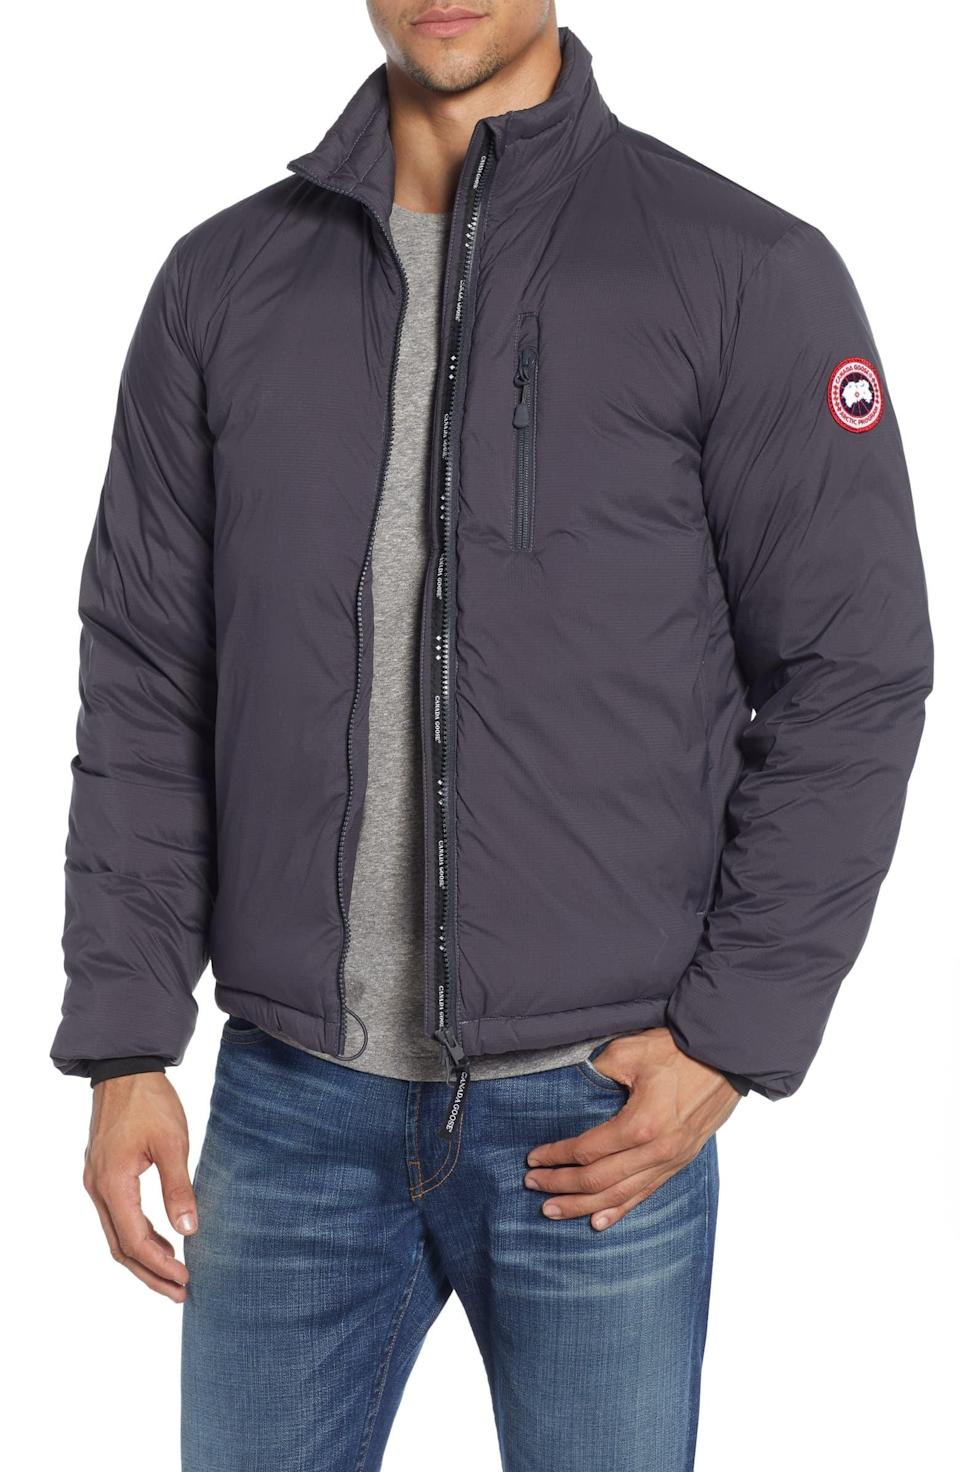 <p>He'll look forward to cold weather when he's got this <span>Canada Goose Lodge Packable 750 Fill Power Down Jacket</span> ($525).</p>